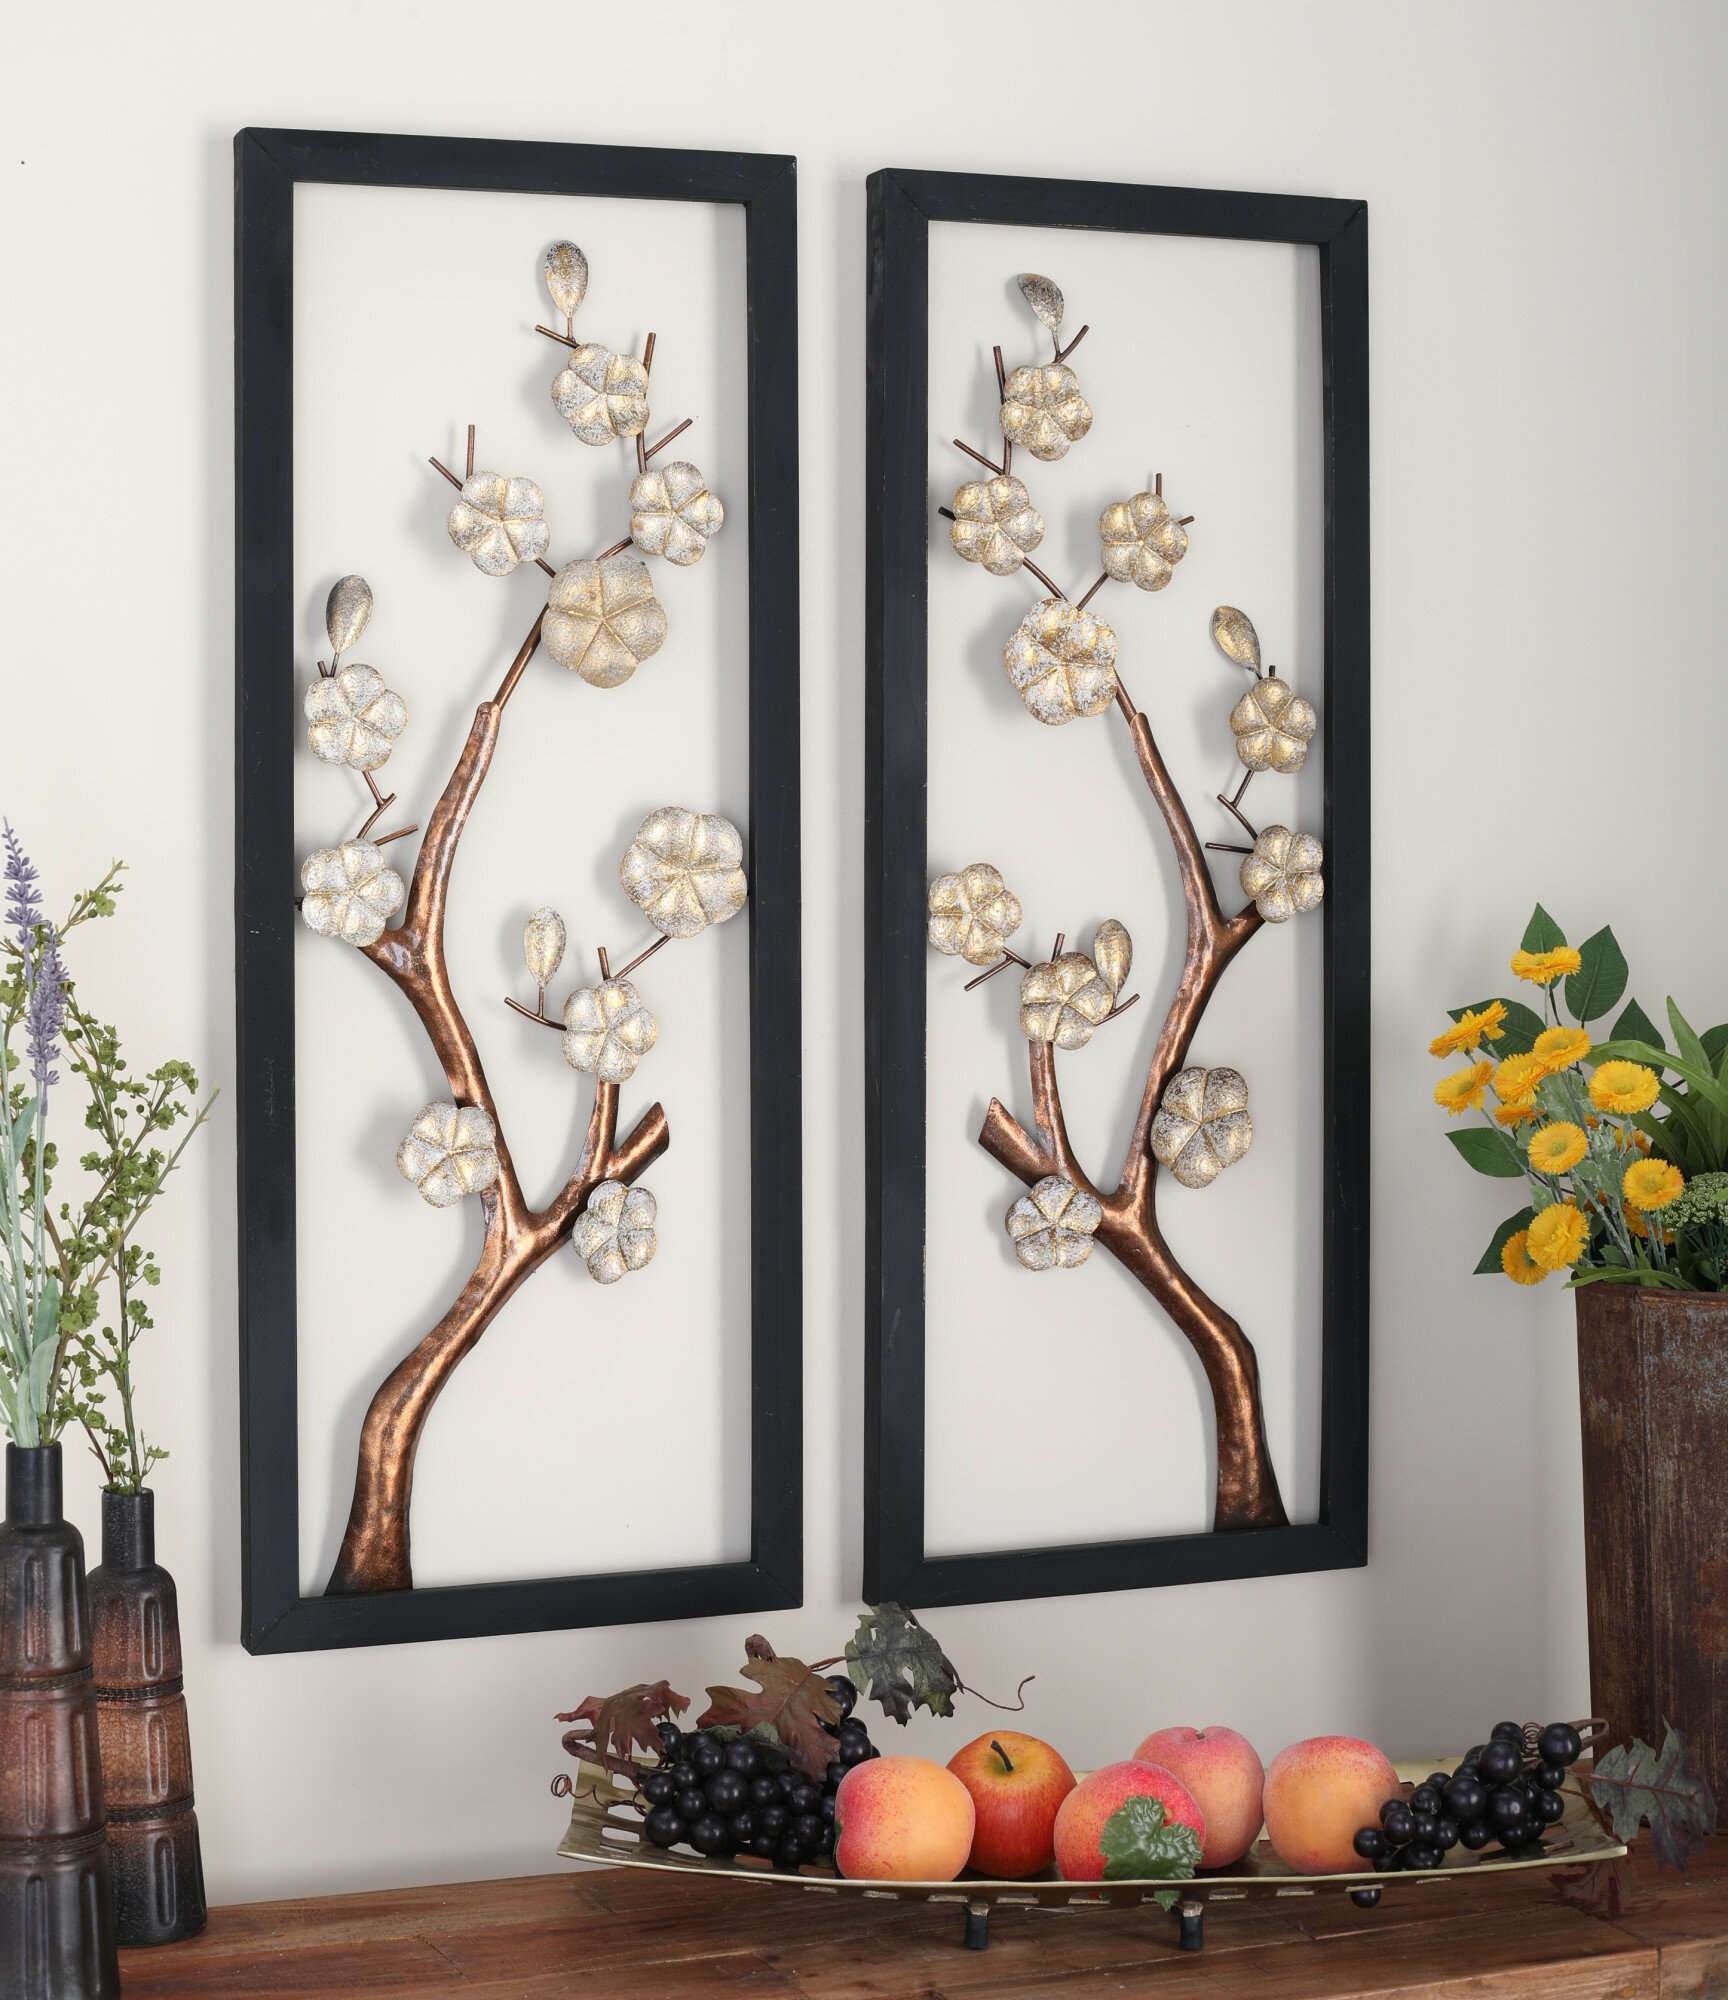 2 Piece Metal Wall Décor Set Throughout 4 Piece Wall Decor Sets By Charlton Home (Gallery 14 of 30)